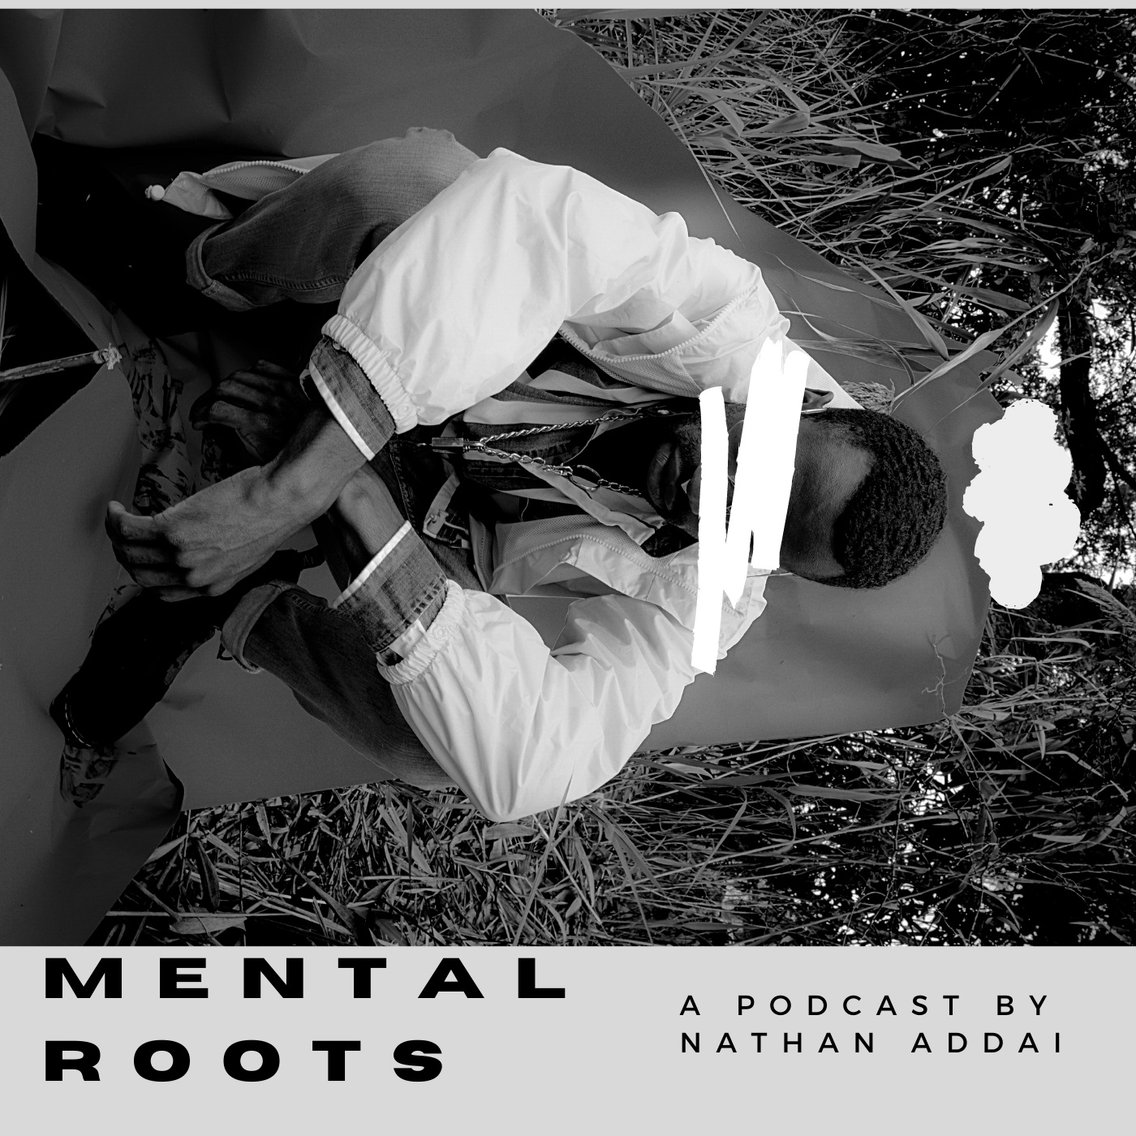 Mental Roots - Cover Image